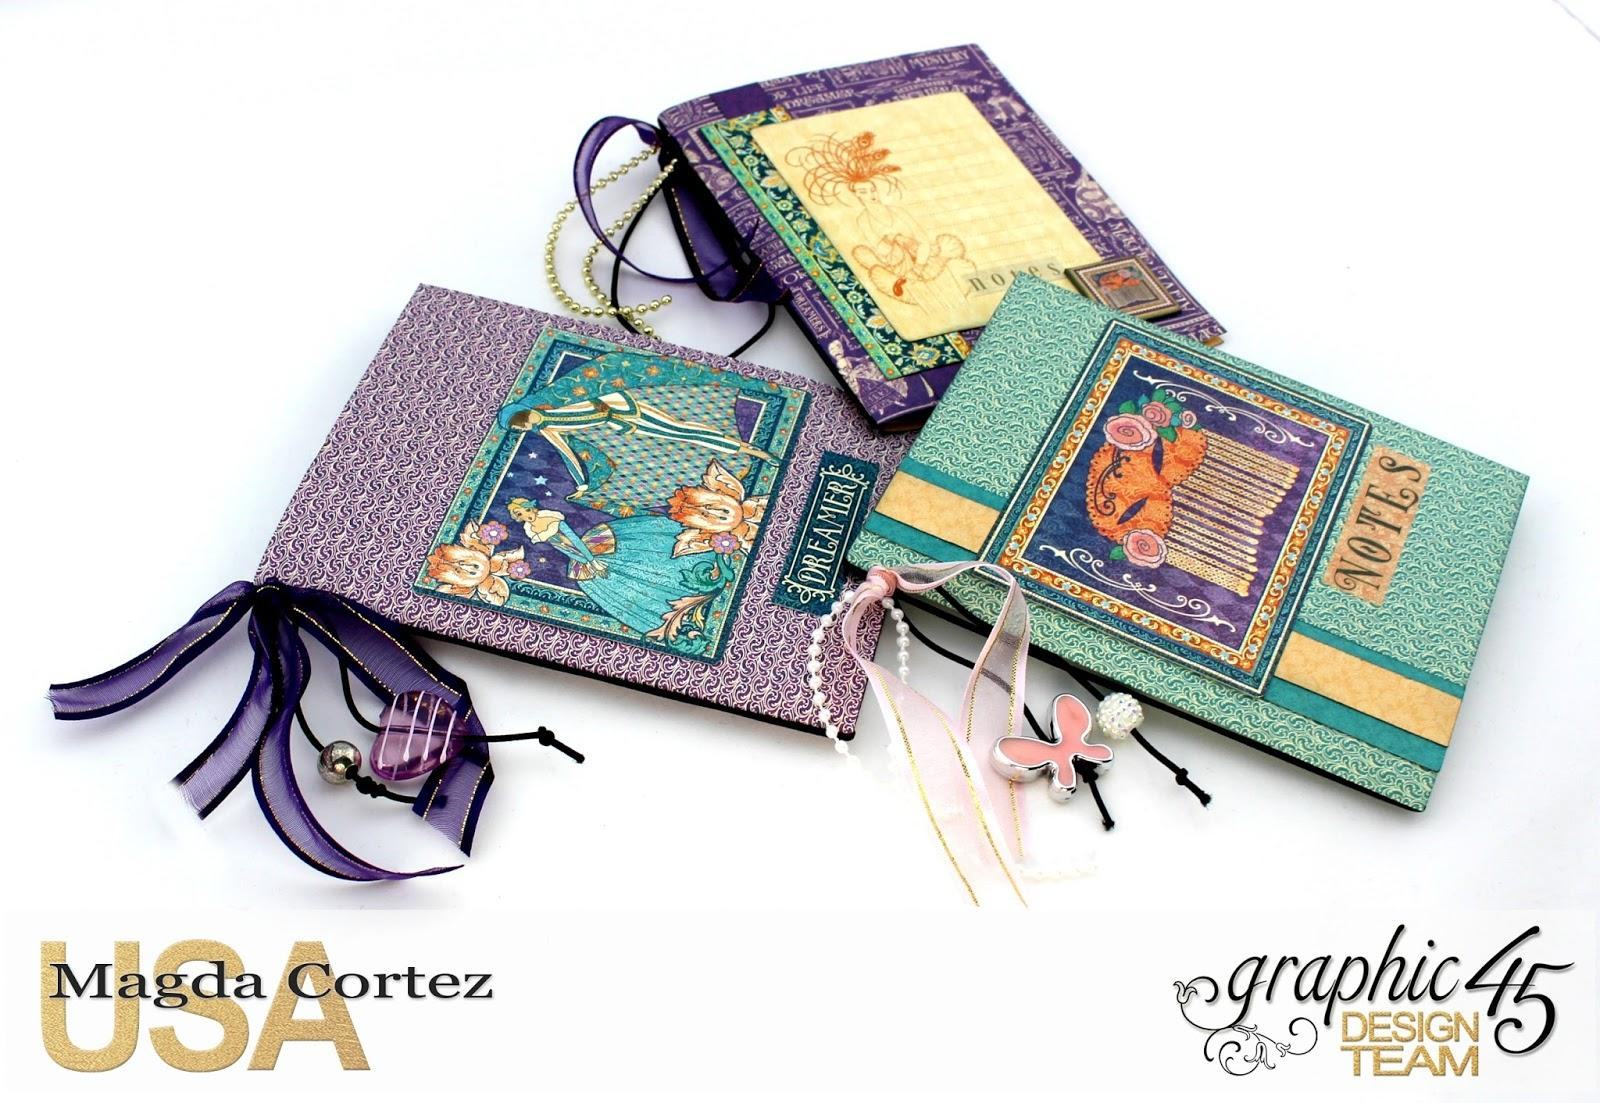 60 Second Tutorial Mini Notebooks, Midnight Masquerade, By Magda Cortez, Product by Graphic 45, Photo 01 of 07, with Tutorial.jpg